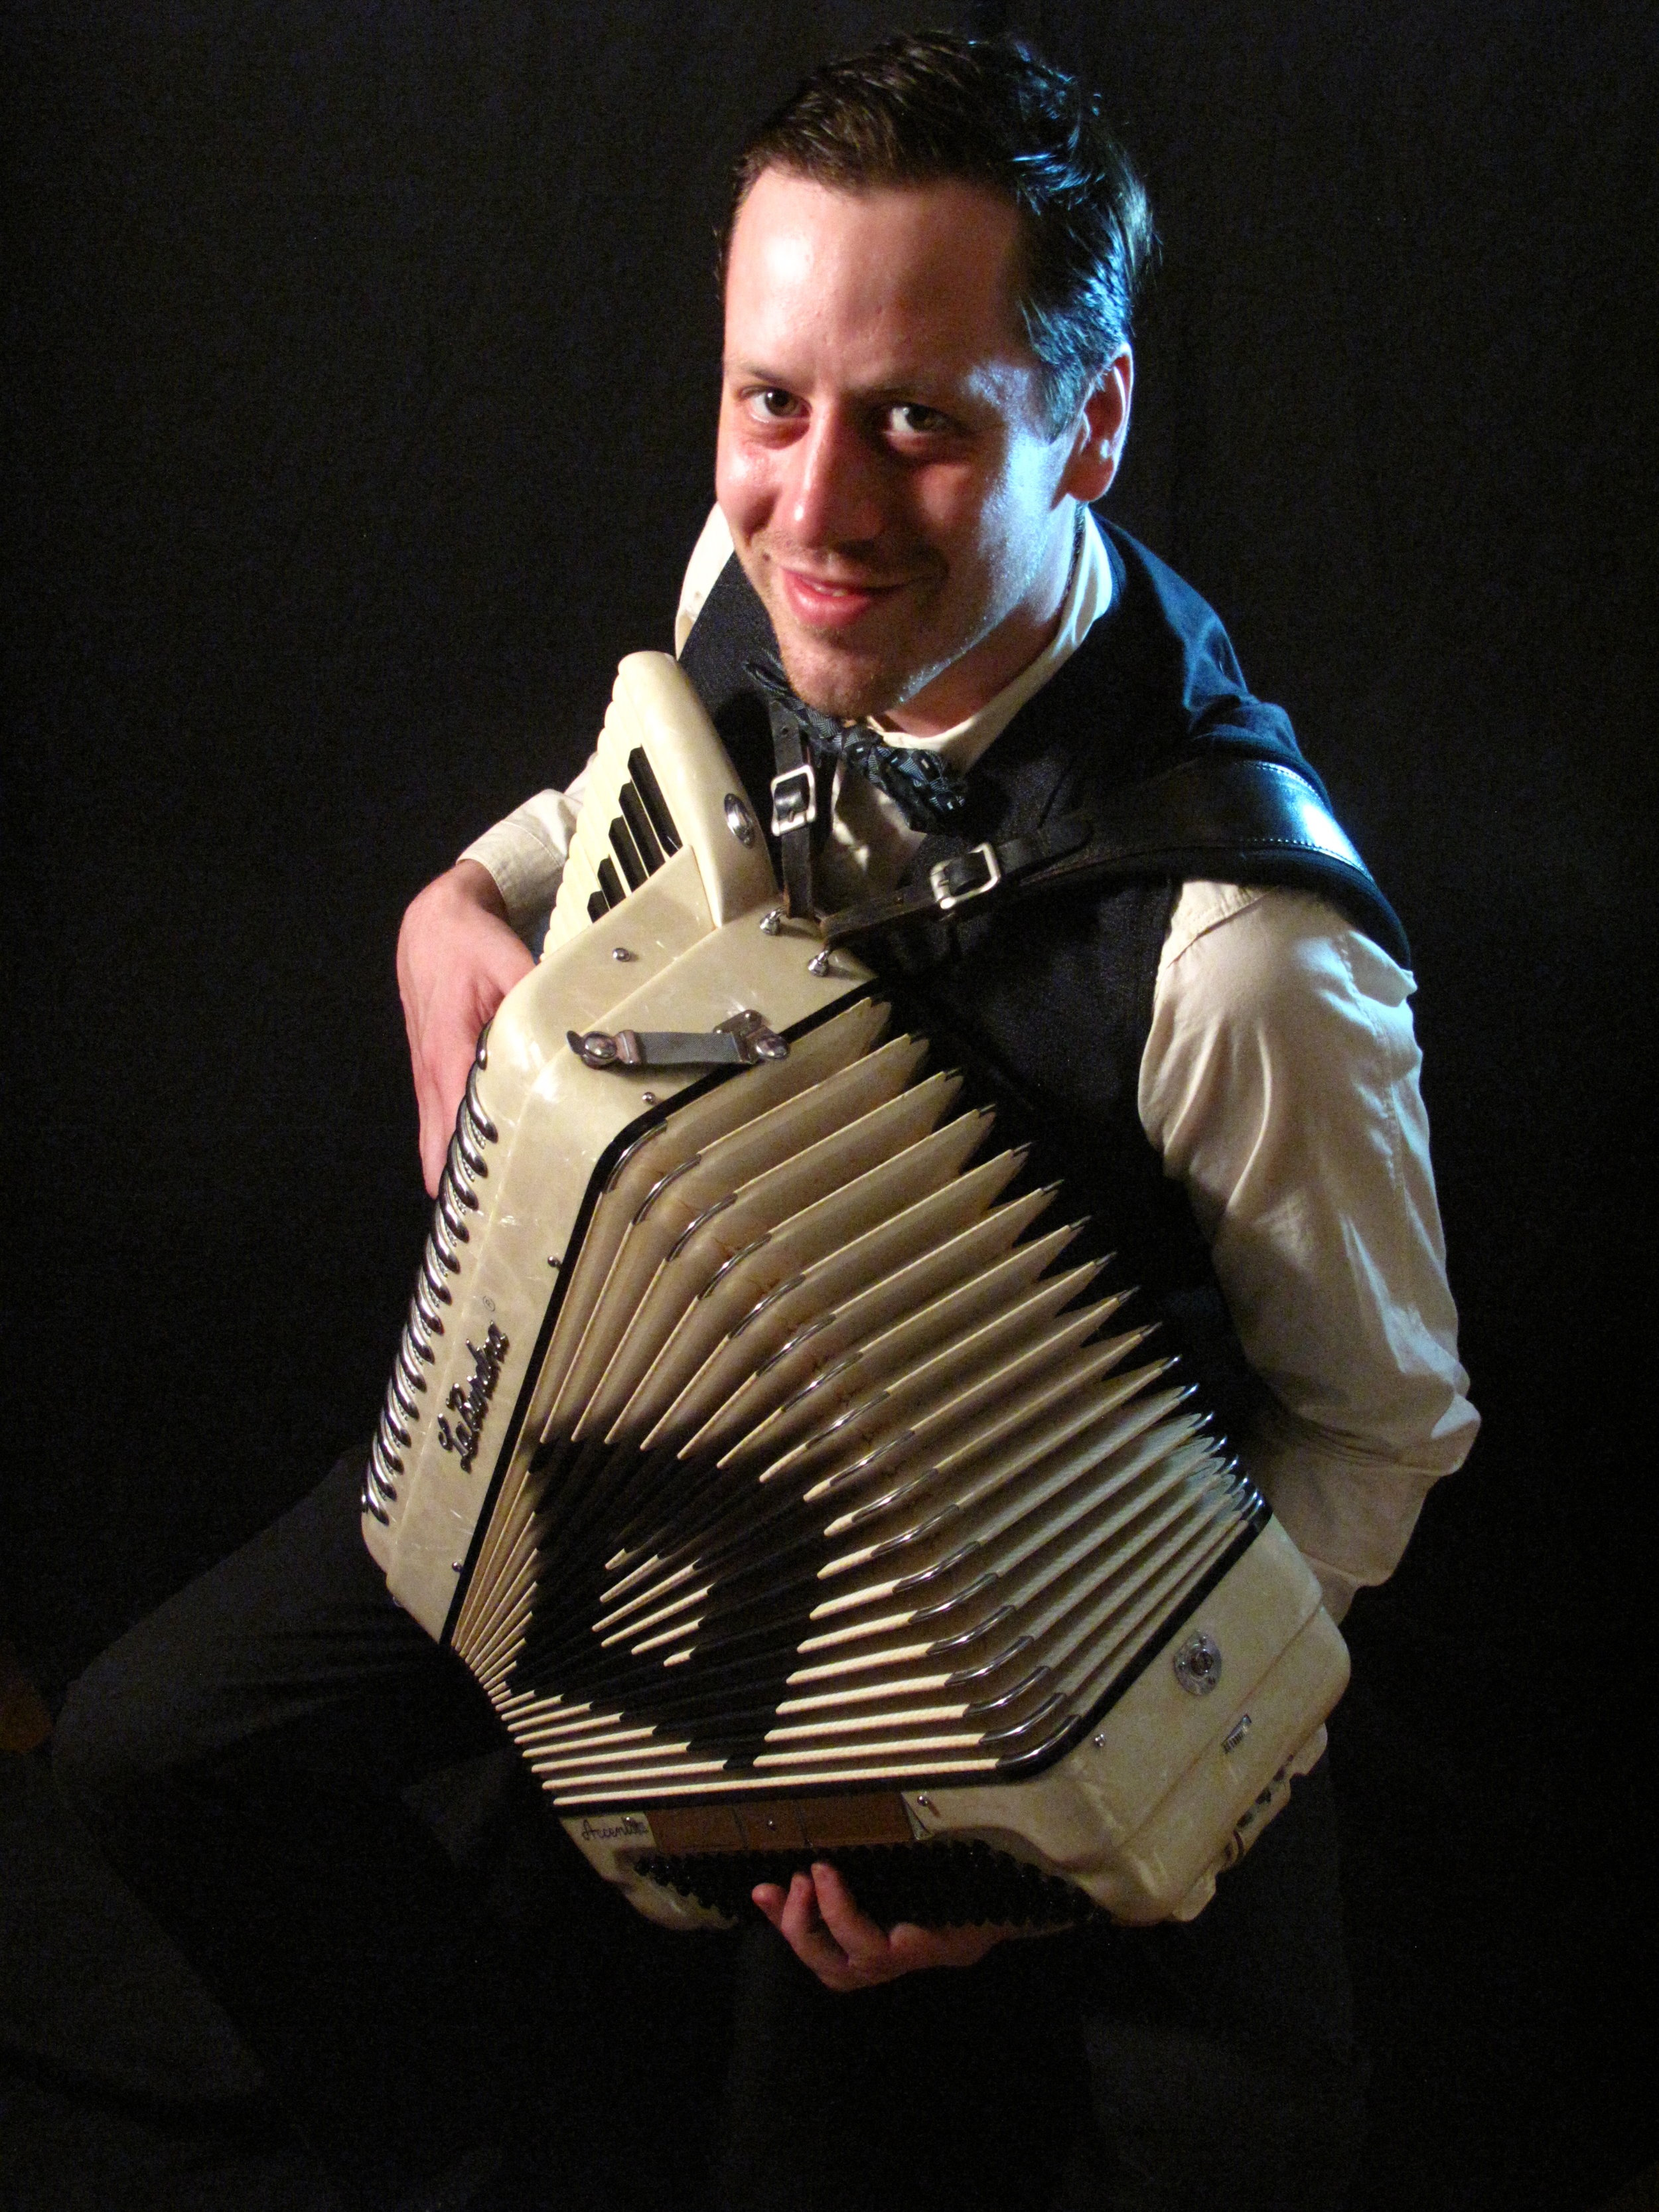 kevin mchugh accordion 03.jpg